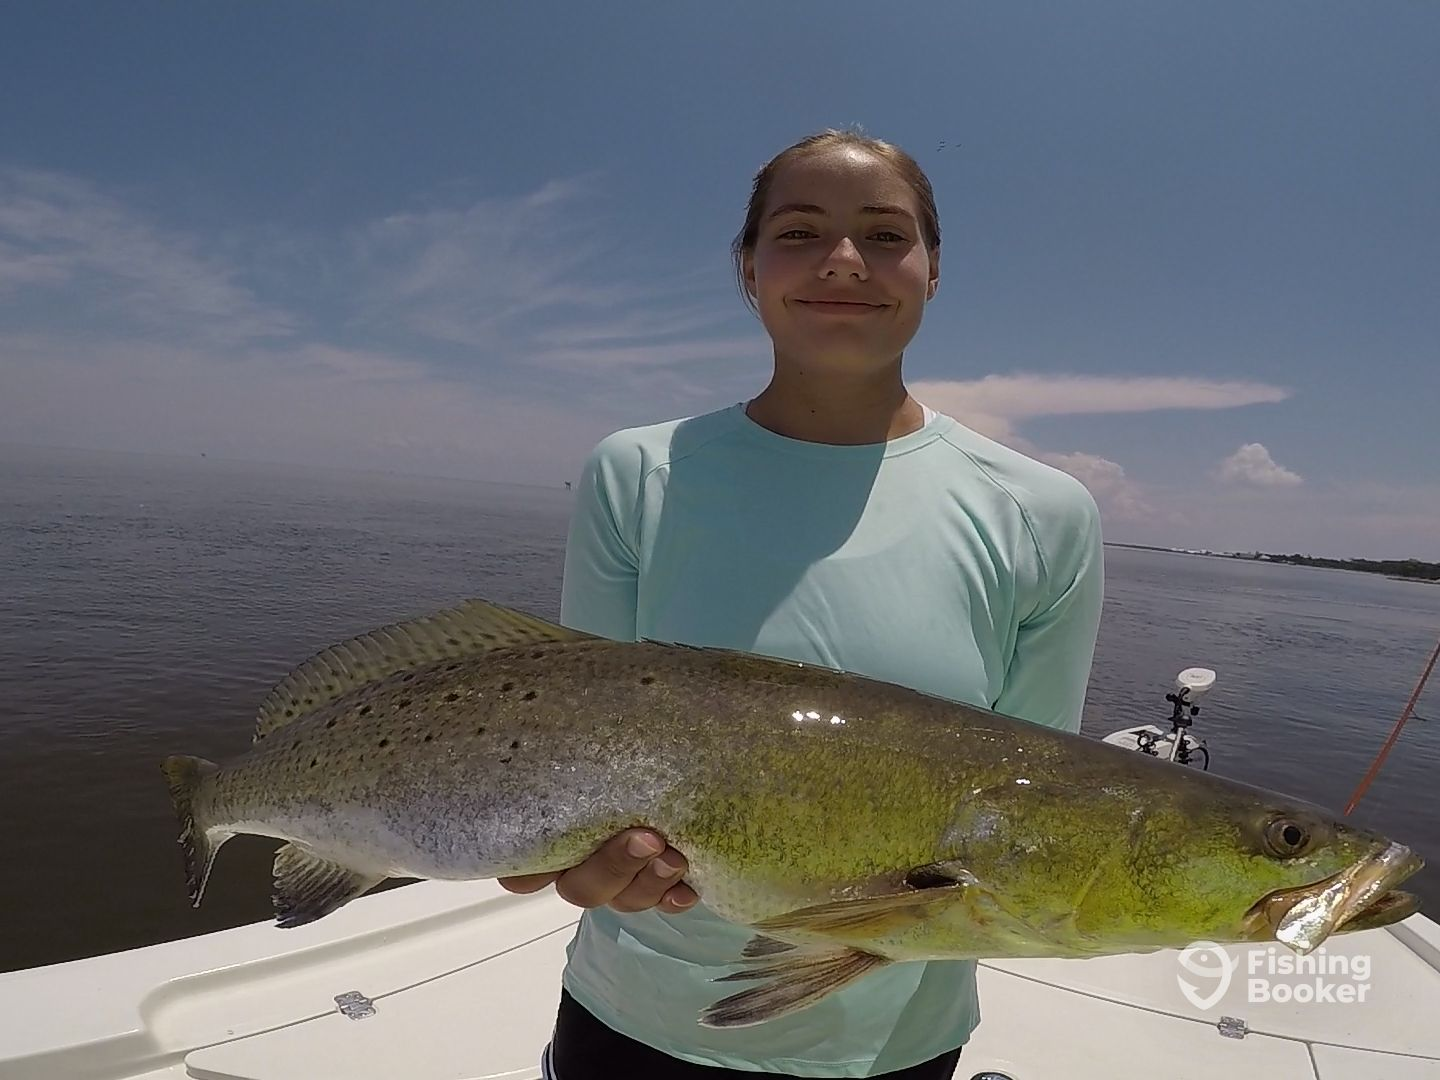 Ugly fishing llc gulf shores al fishingbooker for Gulf shores fishing charter rates